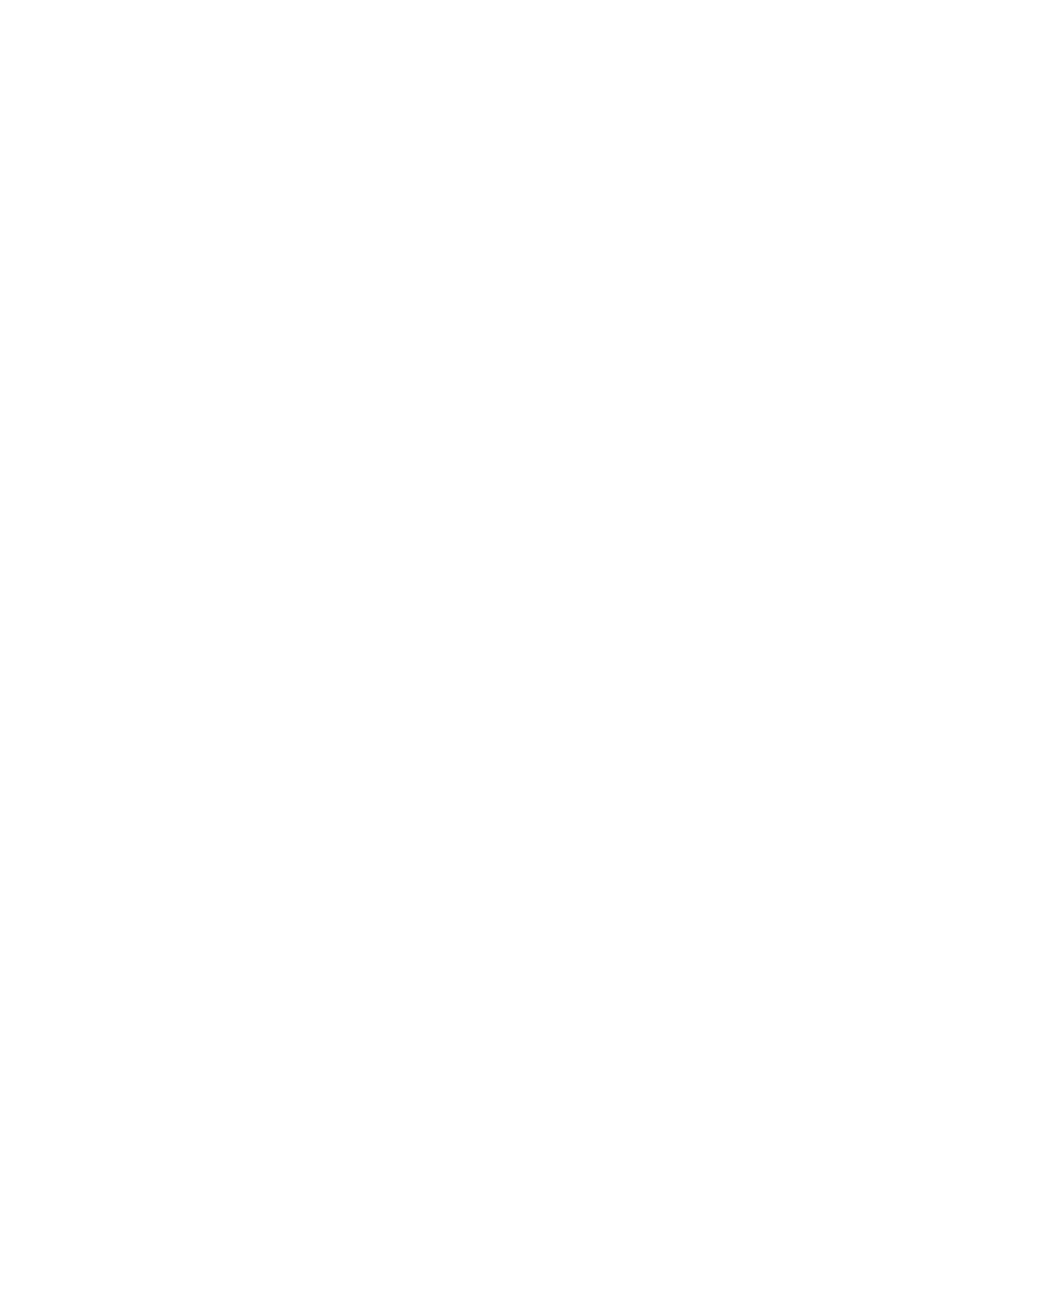 RaiseaRacquetFoundation_Logo_white_181107